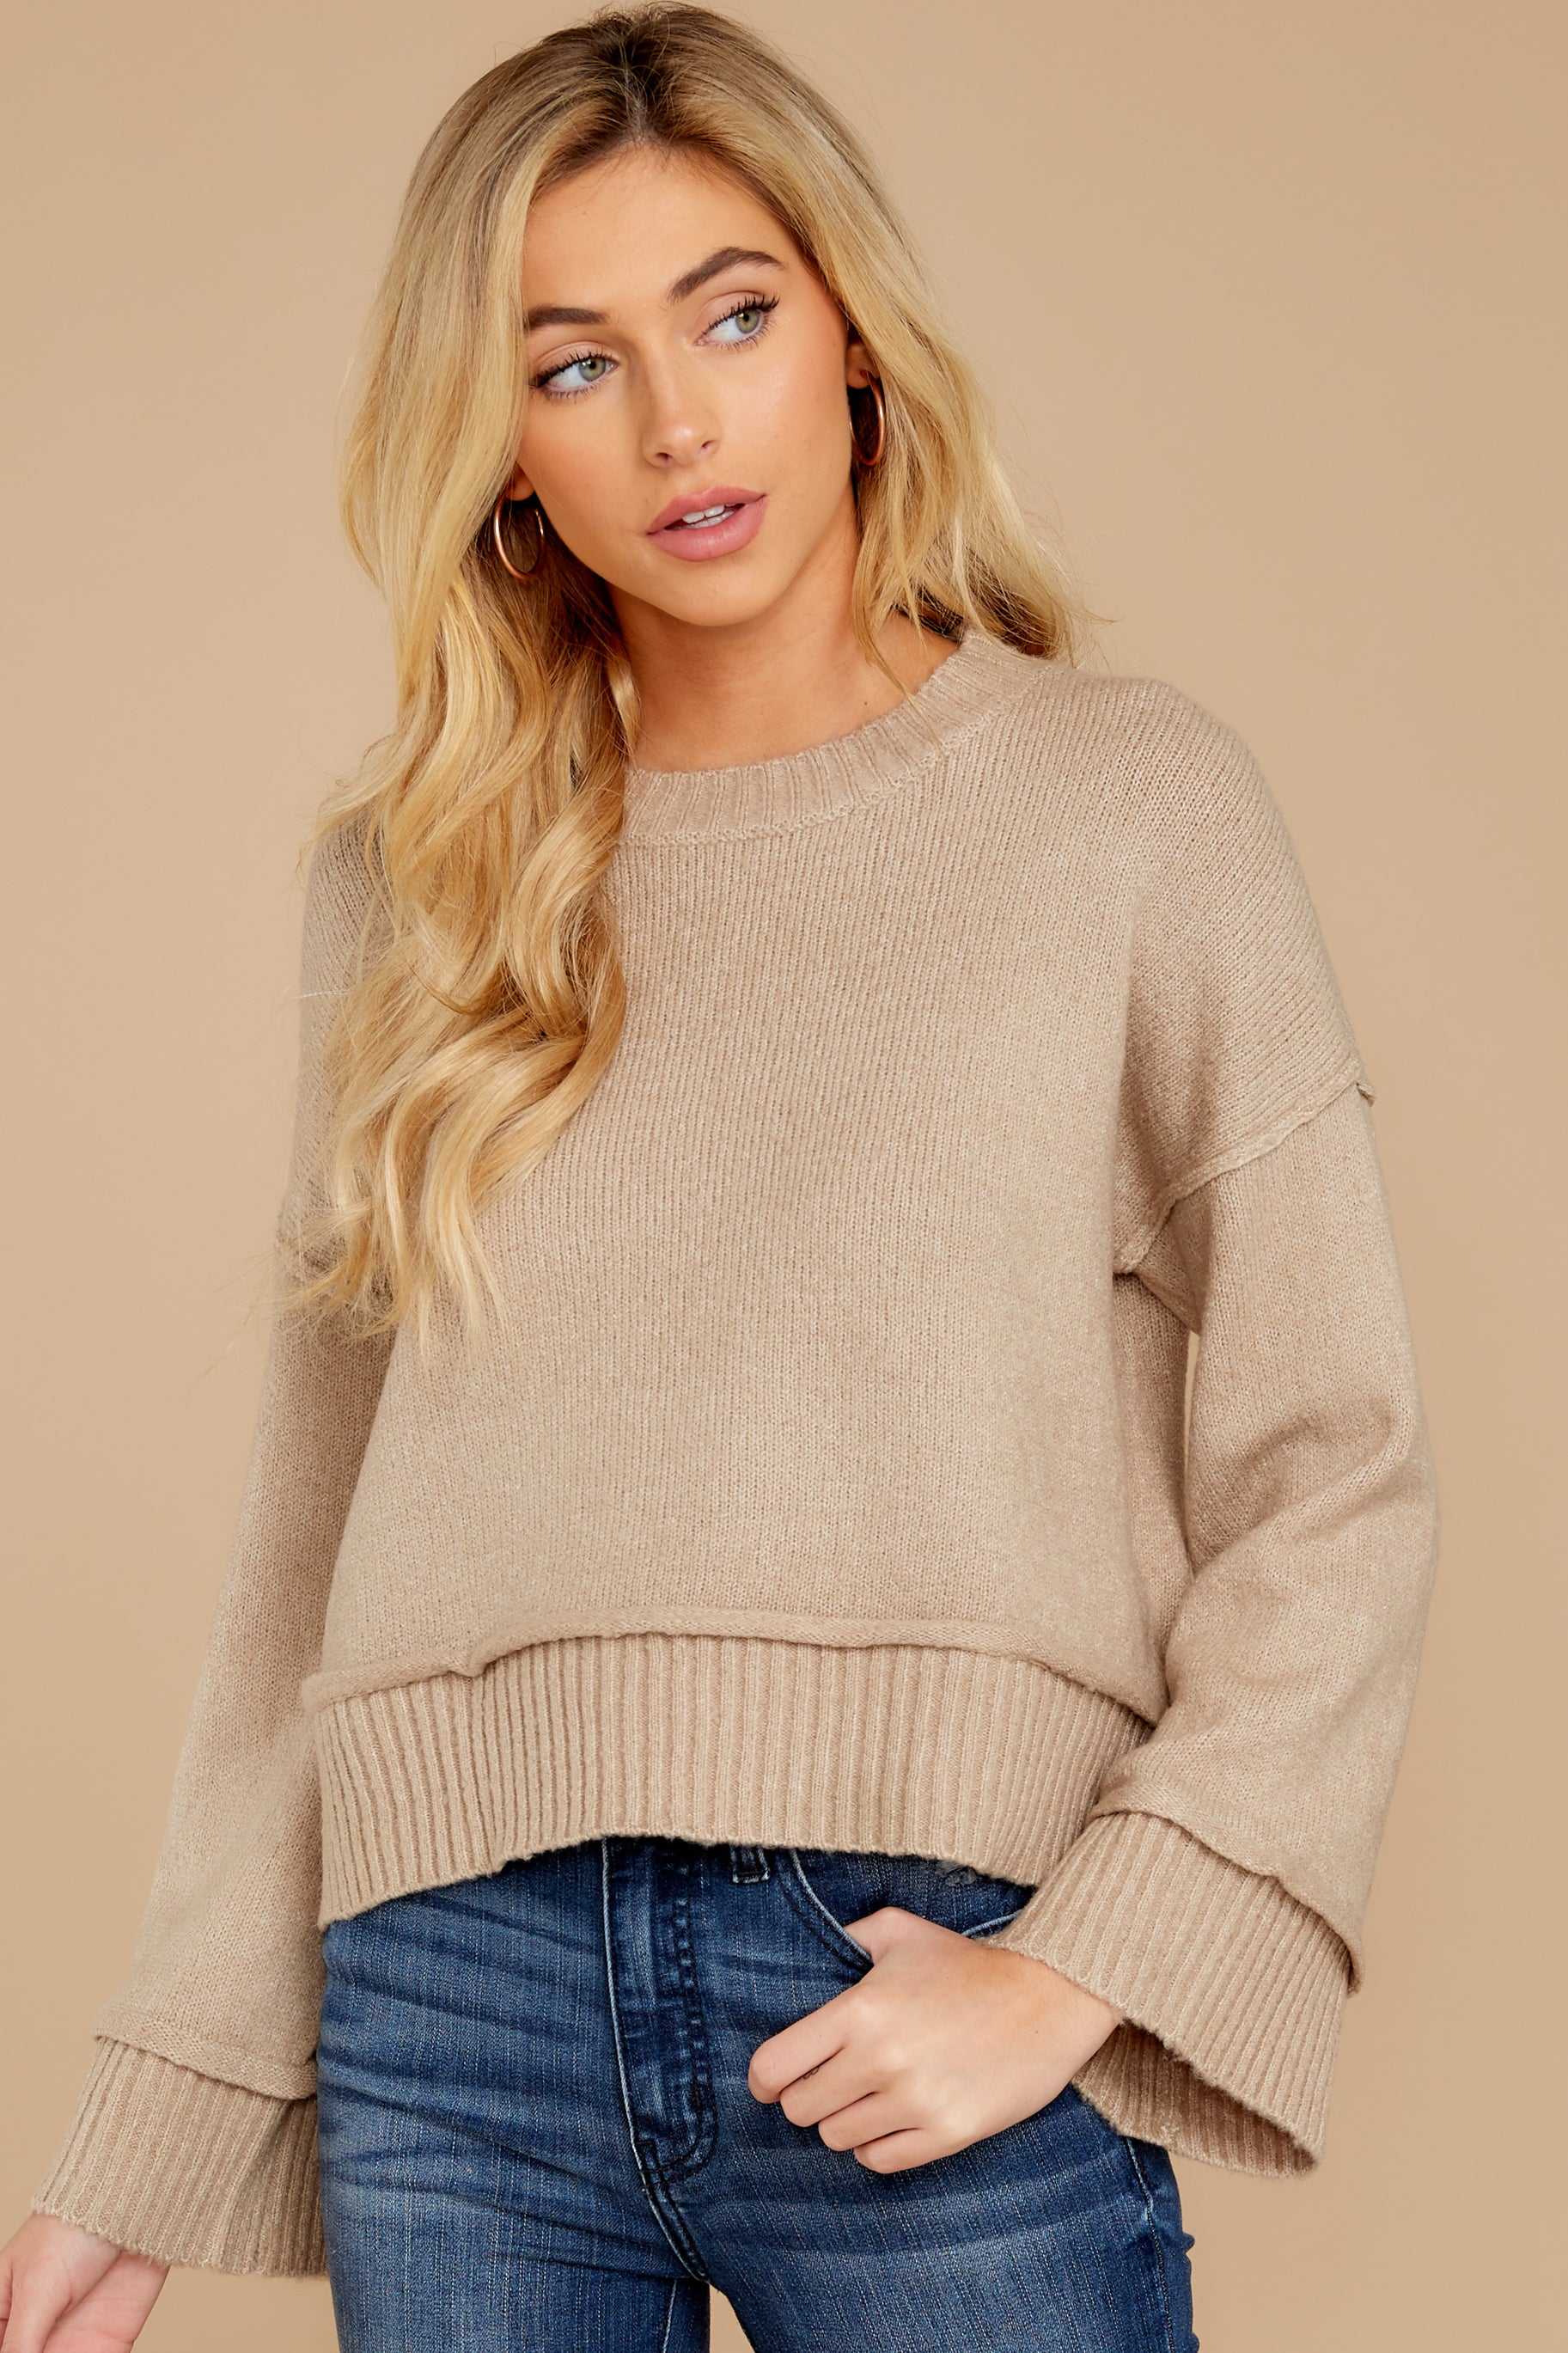 1 Woman About Town Warm Taupe Sweater at reddressboutique.com